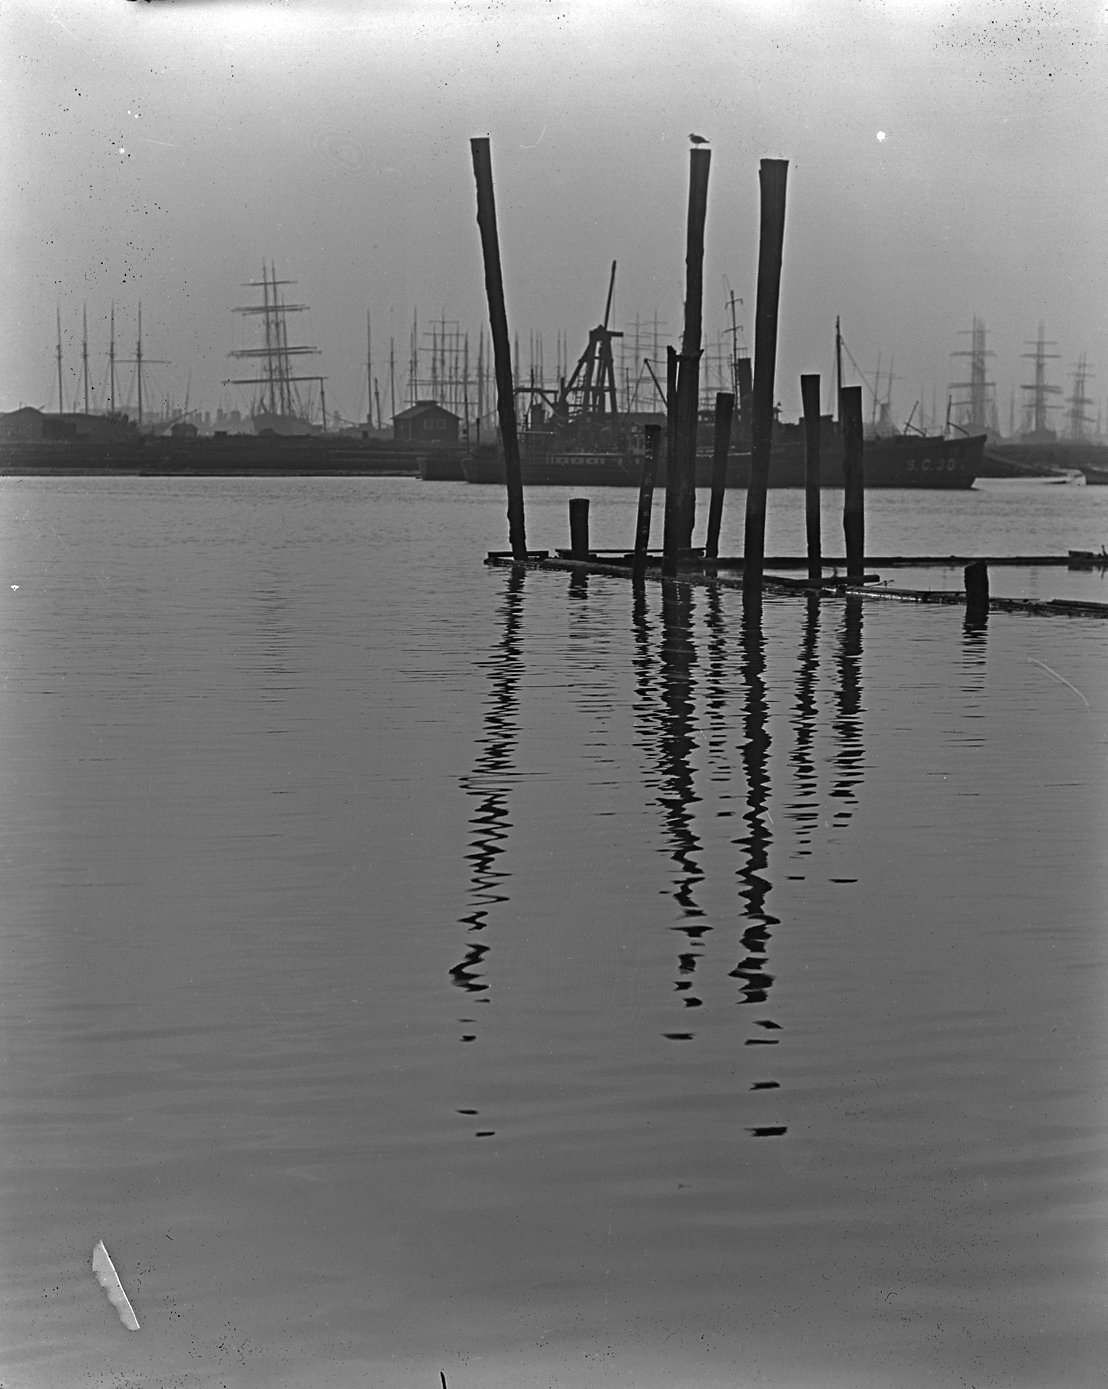 Reflections of wooden piles